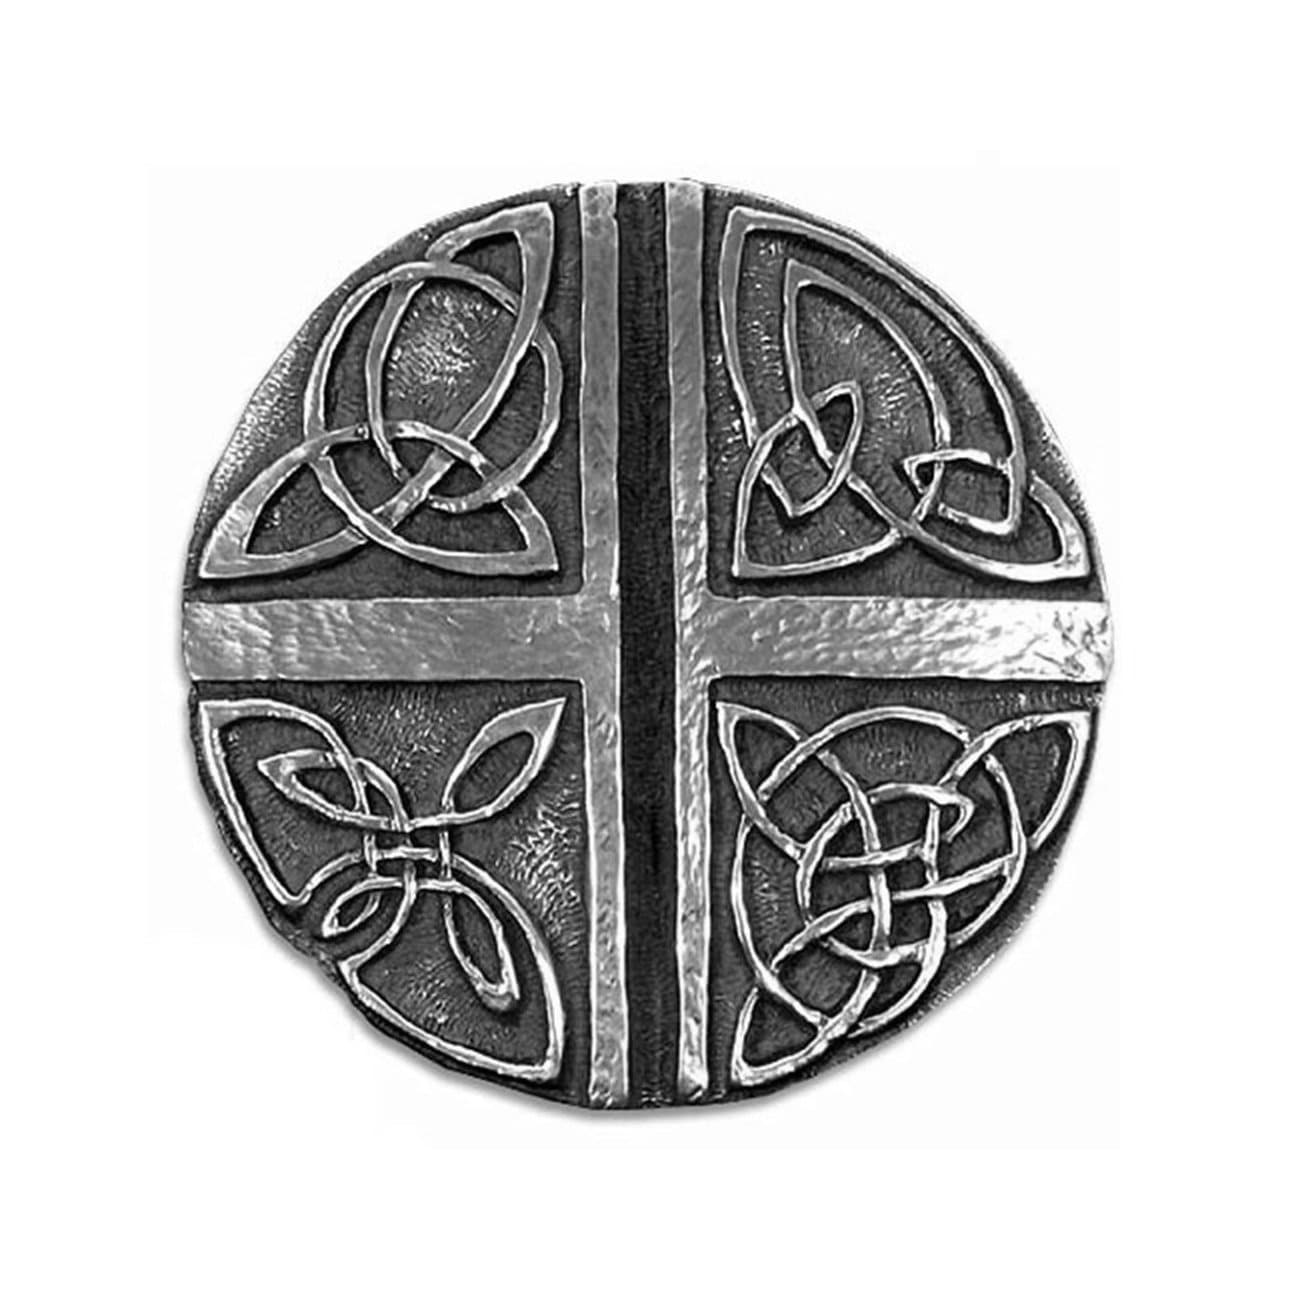 Wall Cross Celtic Knot Design Irish Love Cross Symbol by Wild Goose Studios Made in Kinsale Co. Cork, Ireland